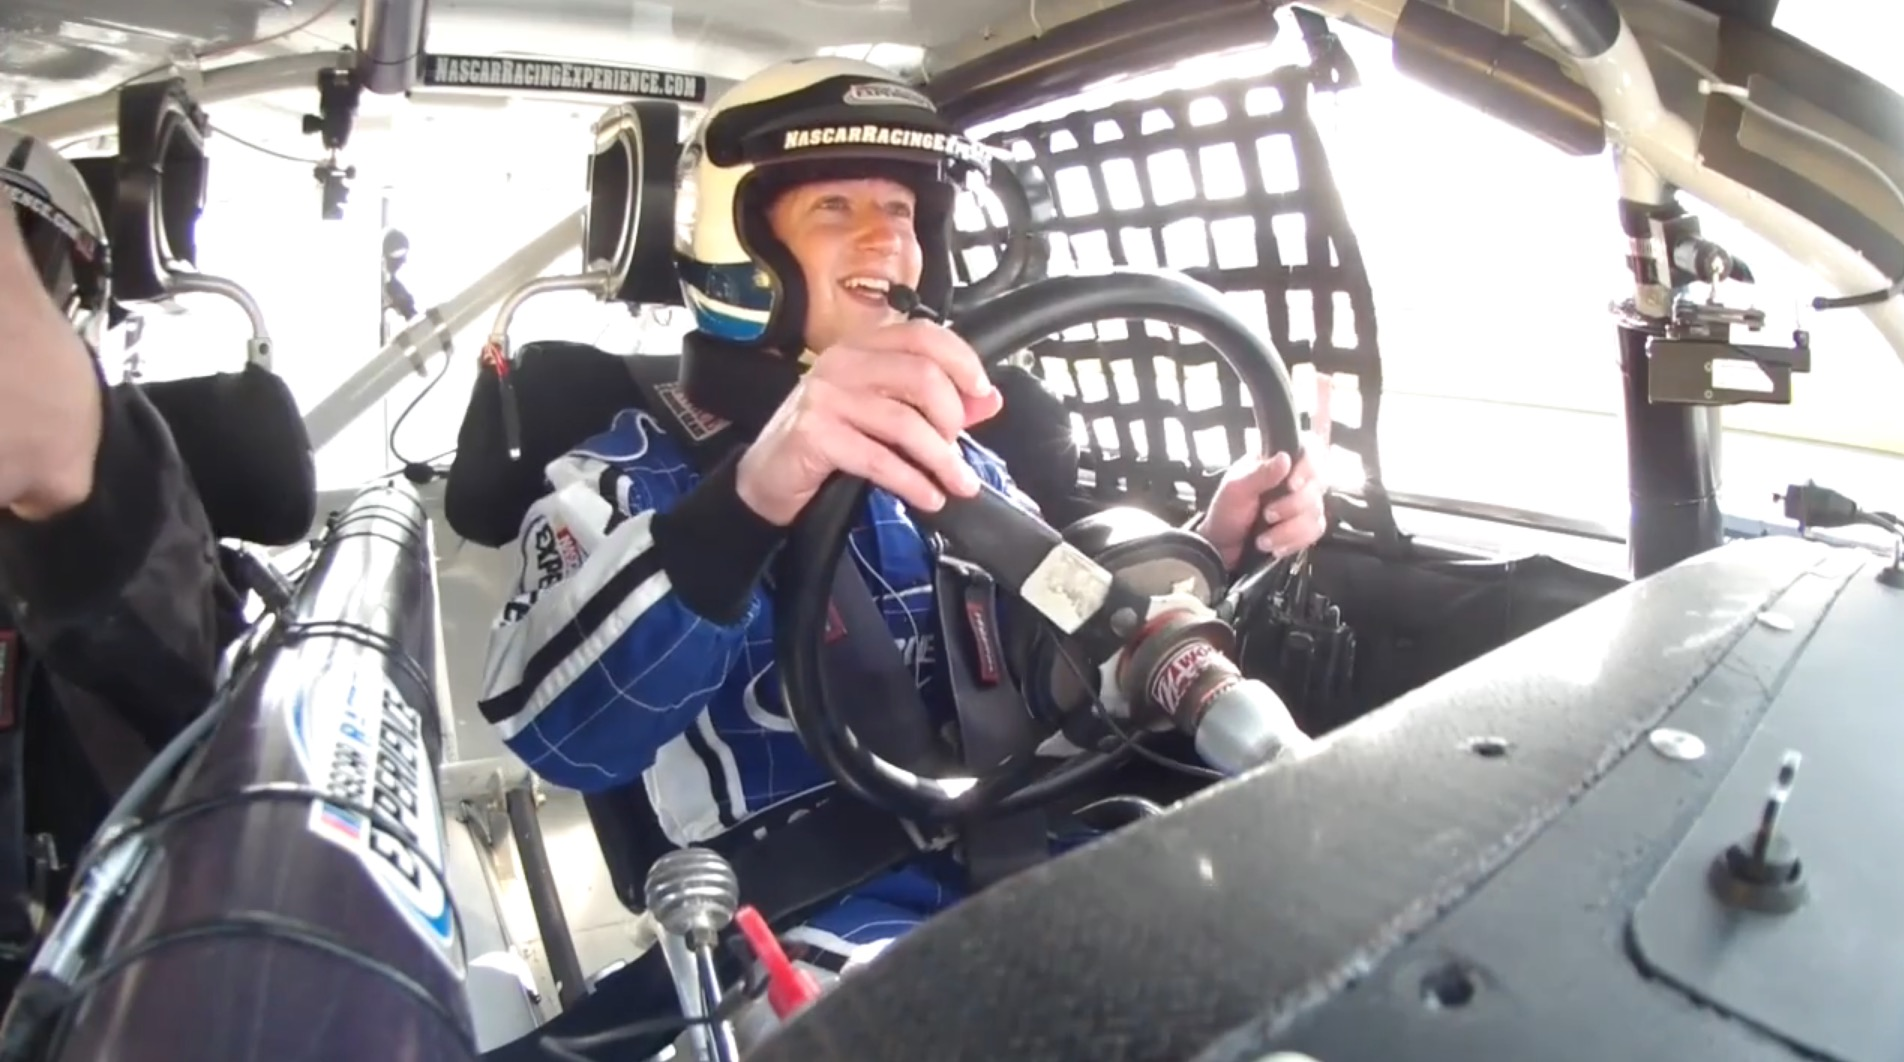 Watch Mark Zuckerberg Ride in a NASCAR Race Car and Freak Out